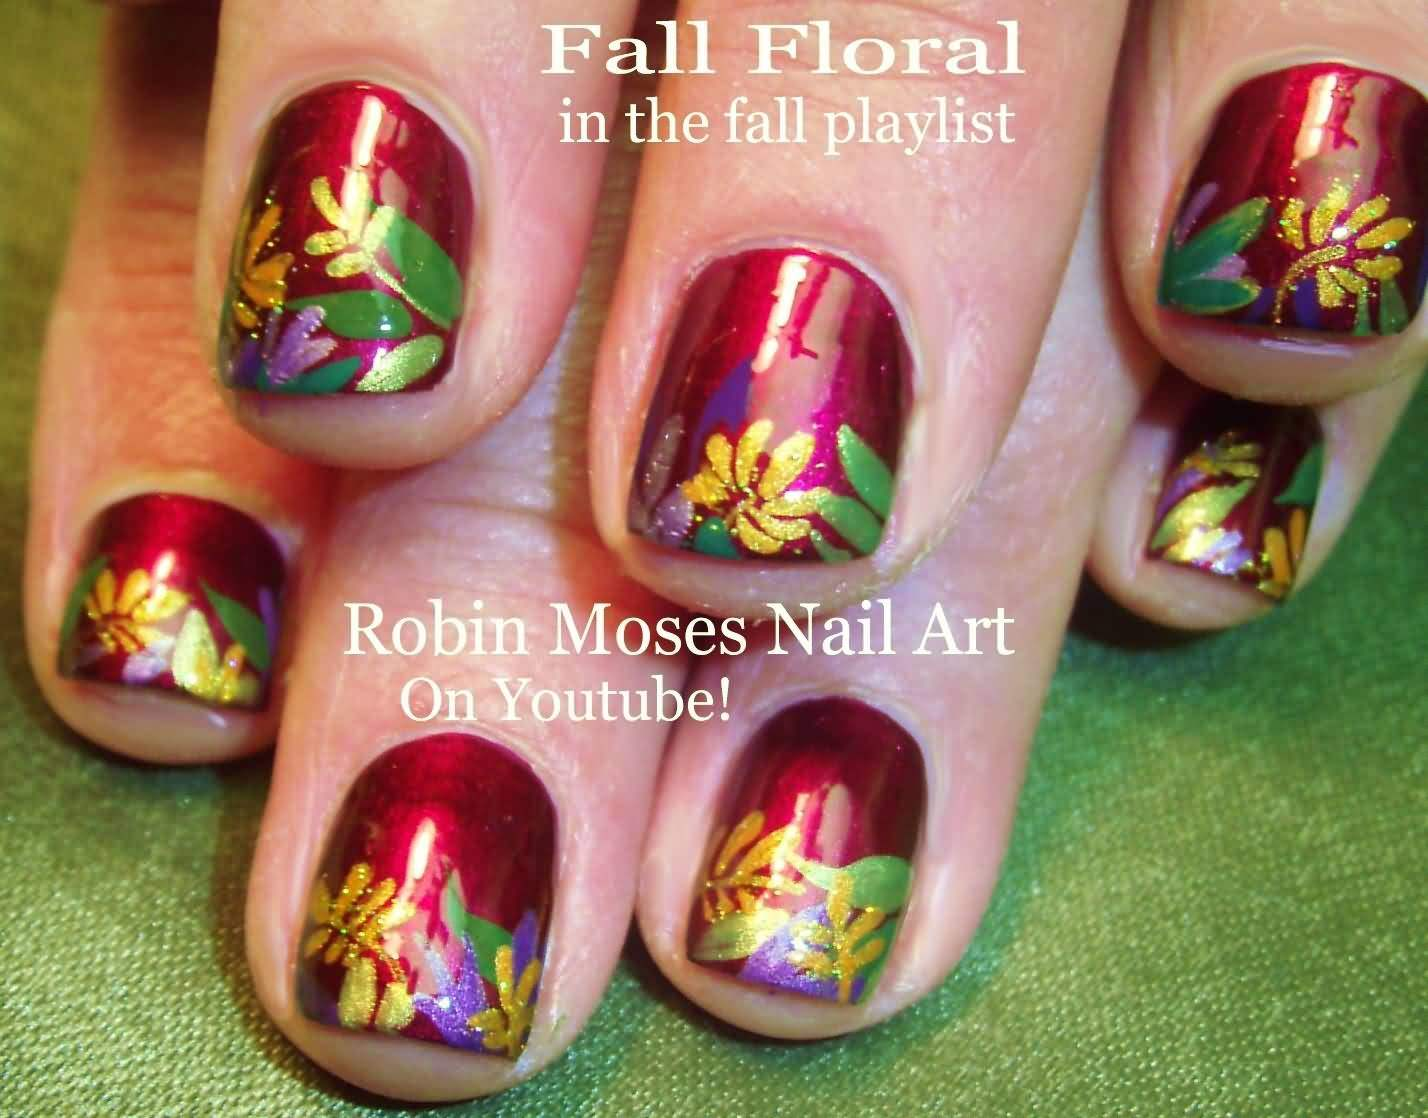 for more  nail